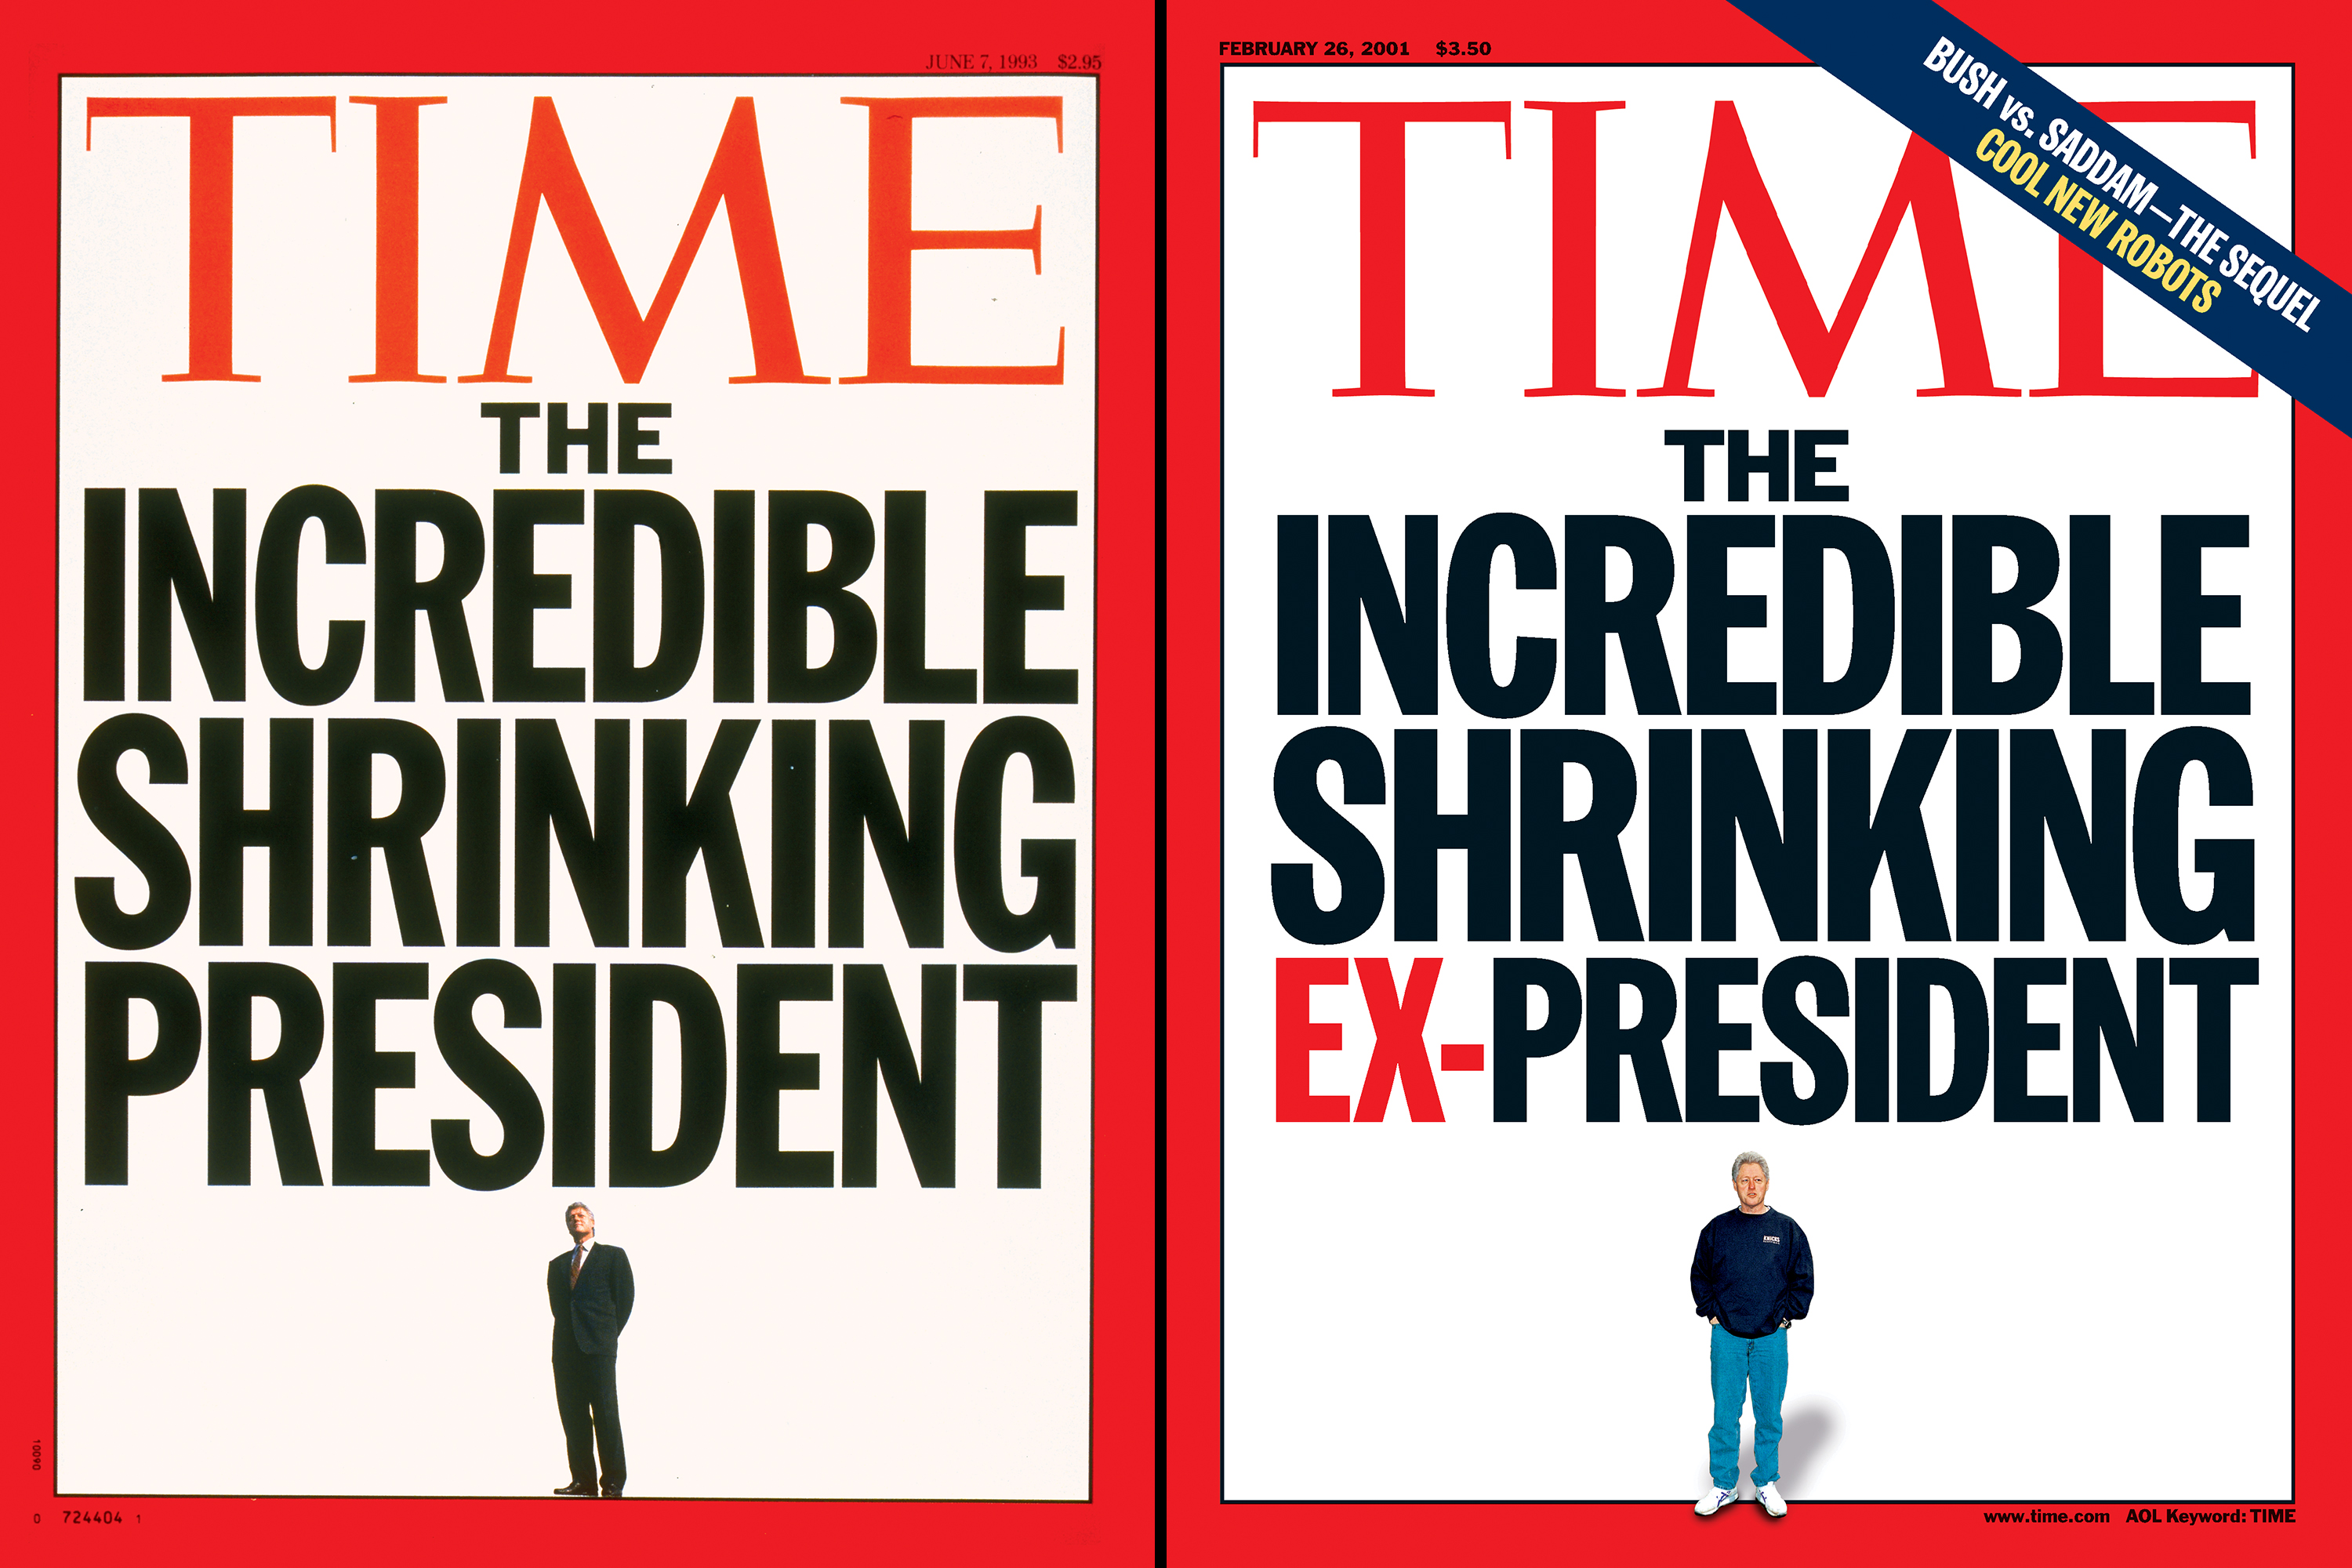 The Incredible Shrinking President,  June 7, 1993;  The Incredible Shrinking Ex-President,  Feb. 26, 2001